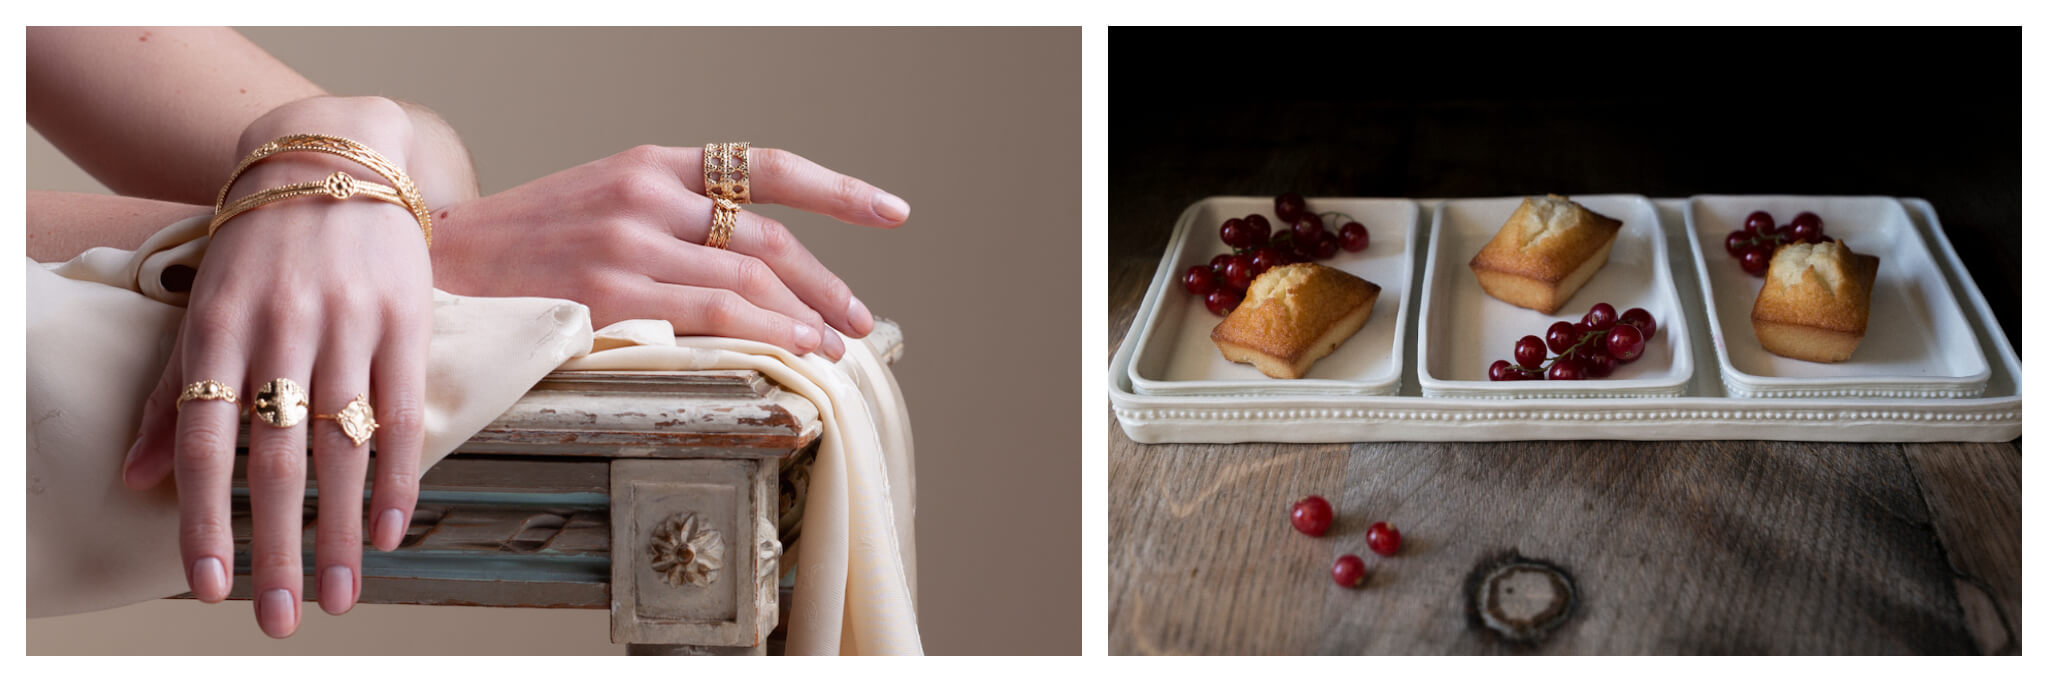 Left: two hands wearing gold rings and bracelets lay atop each other, posed on a table, Right: Grapes and small baked goods sit in white porcelain rectangular bowls atop a wooden table